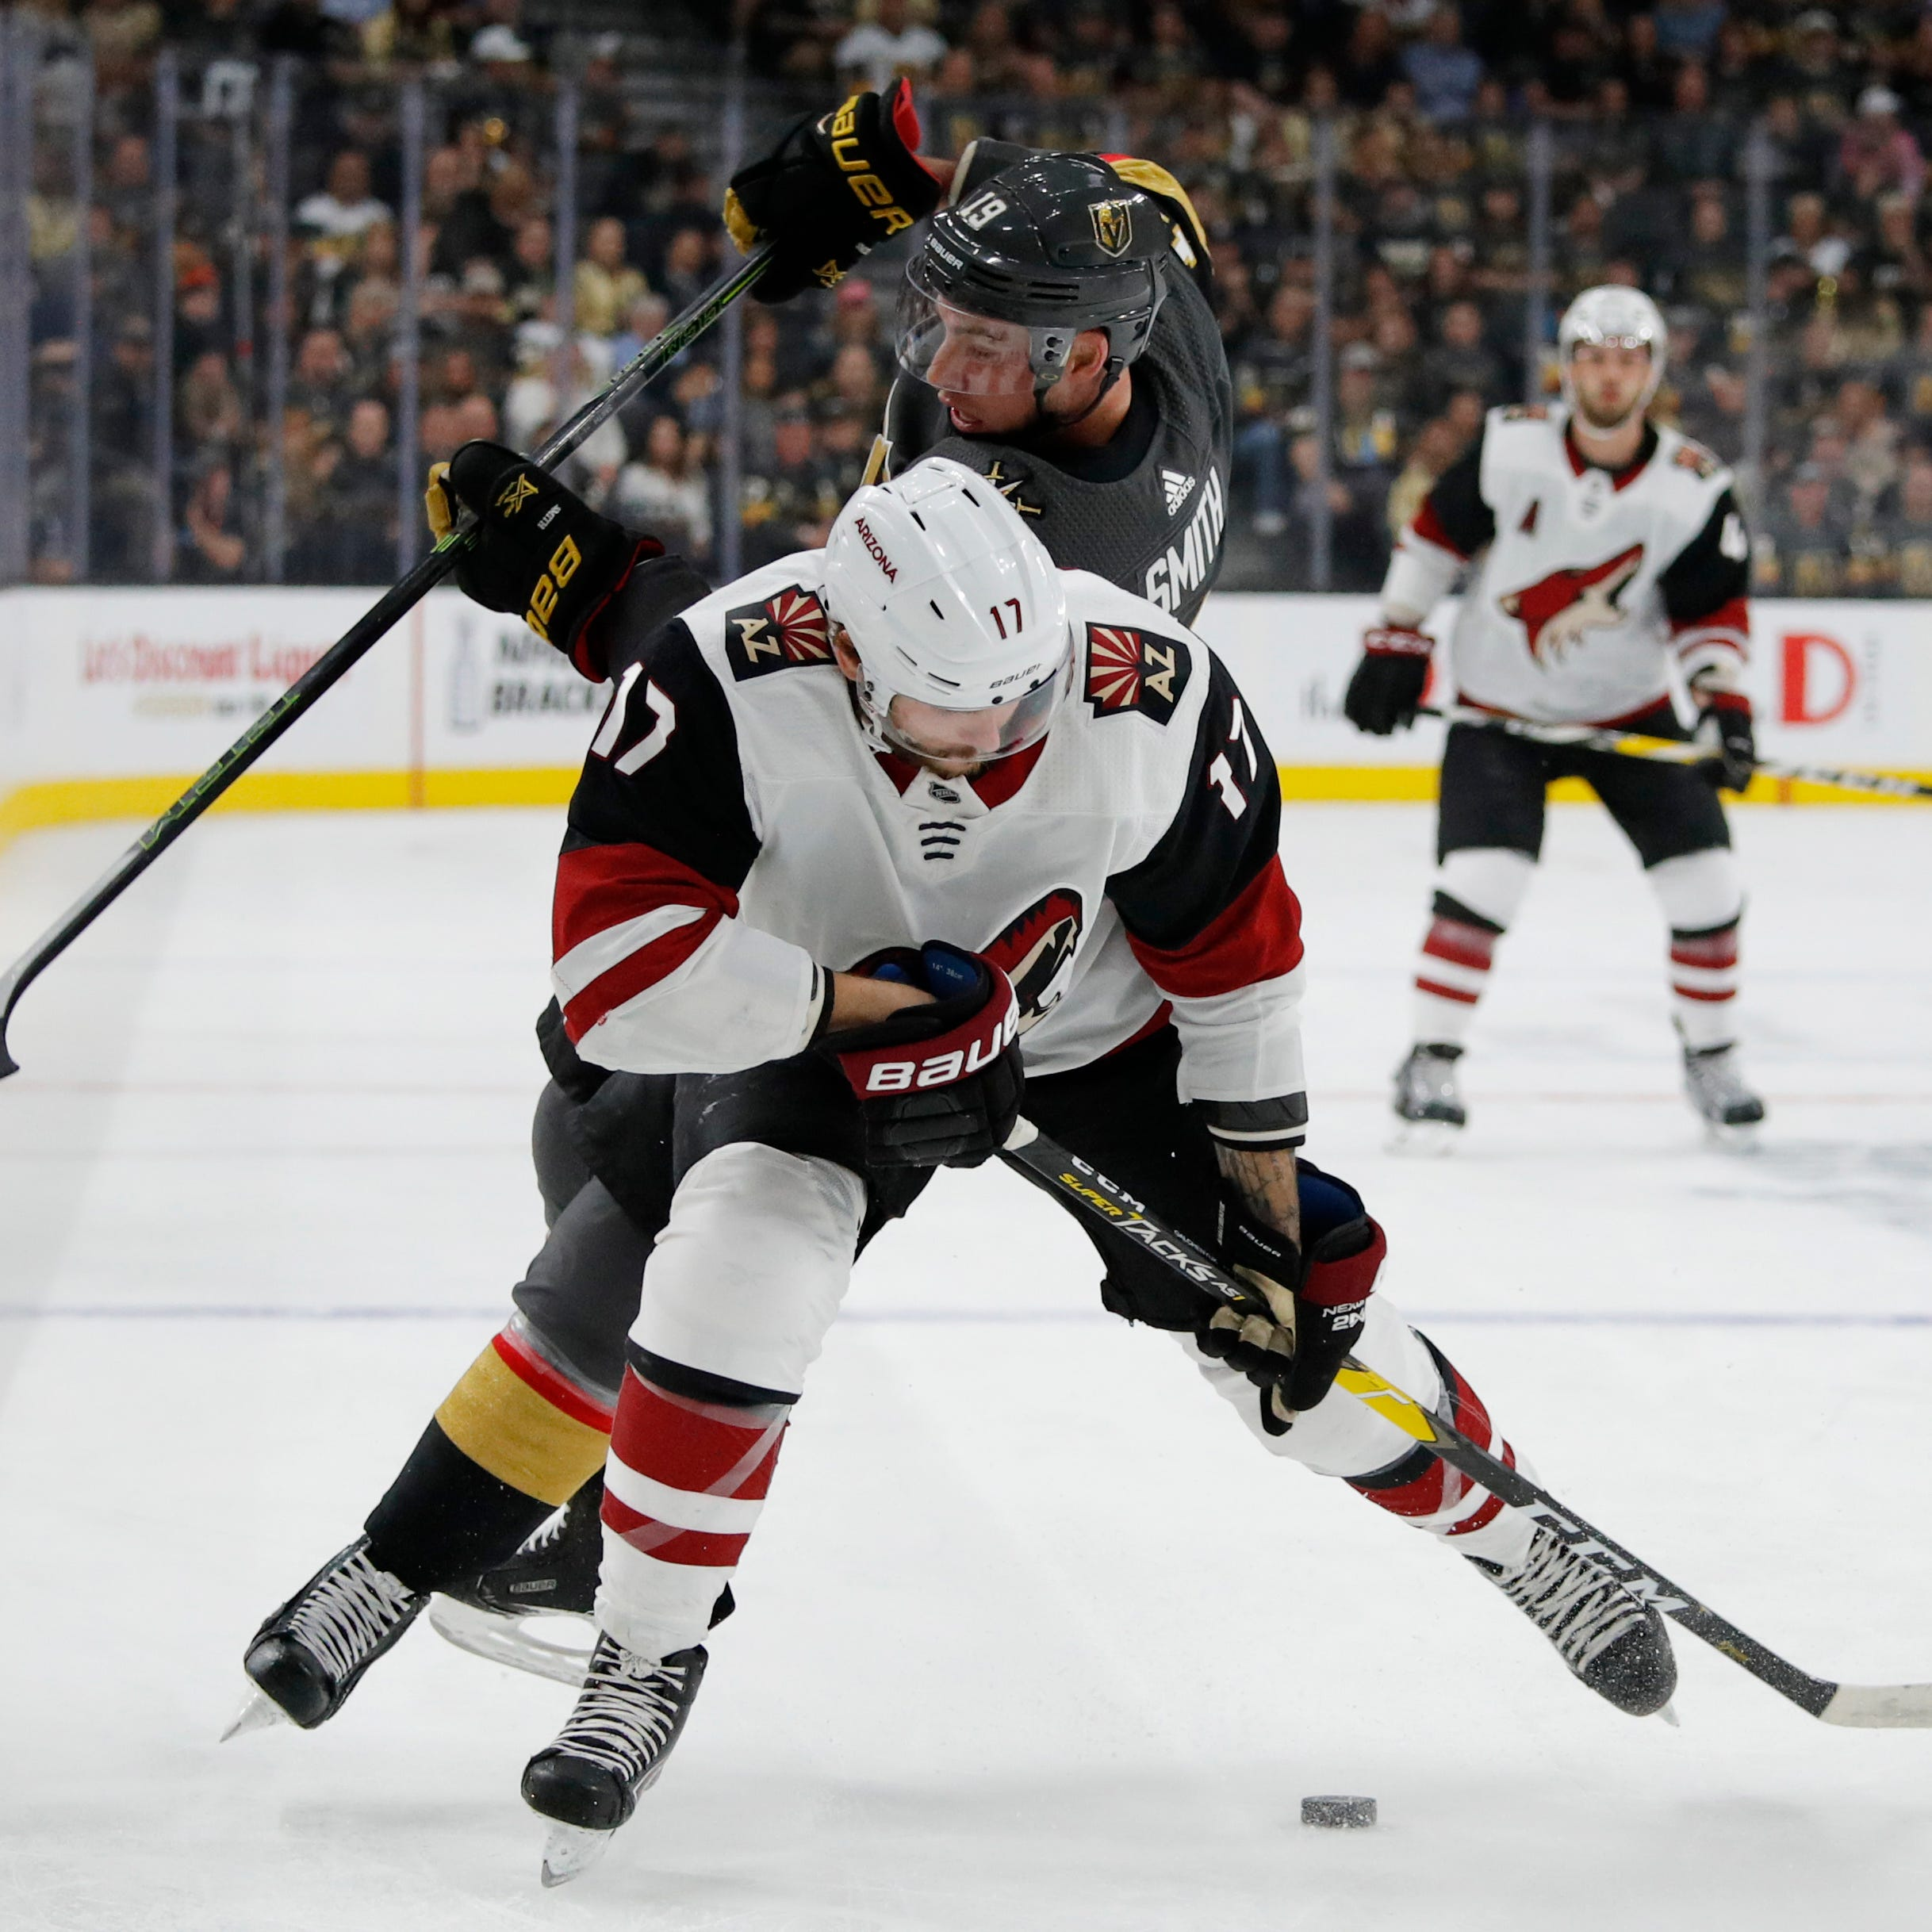 Coyotes beat Golden Knights but still eliminated from playoffs